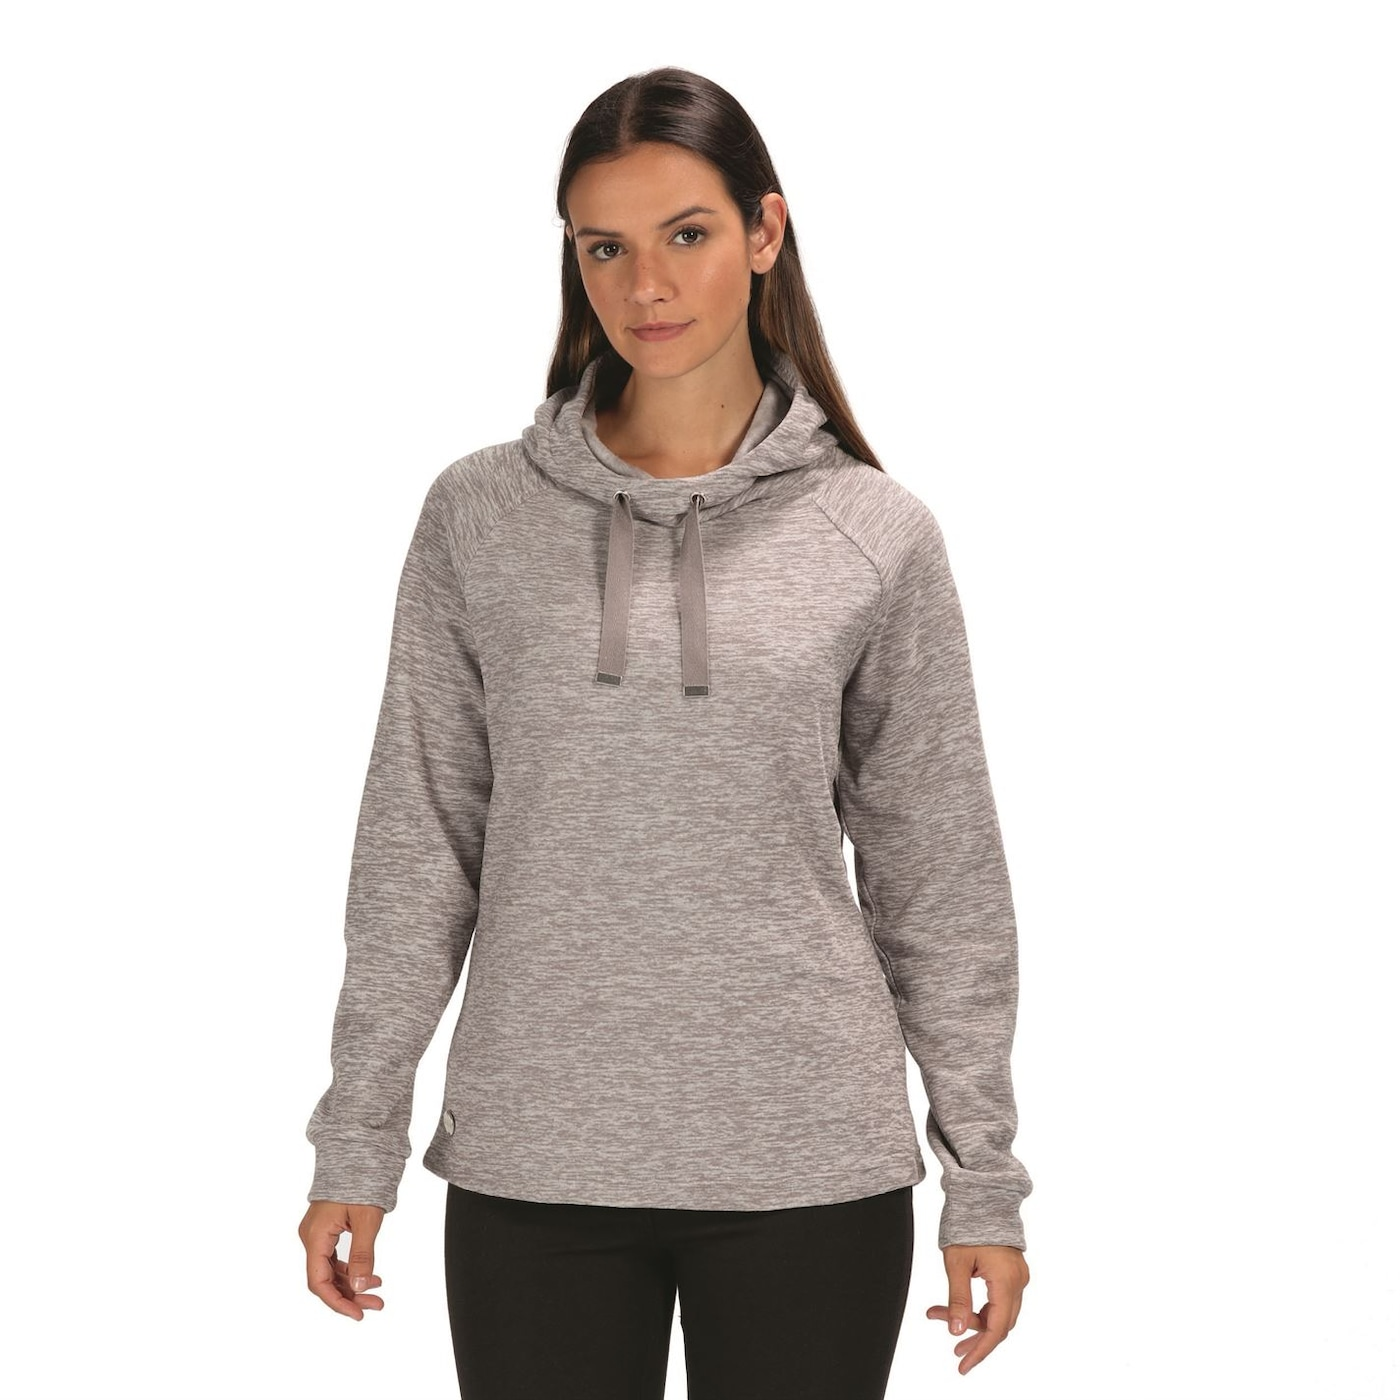 Regatta Calandra Microfleece Hooded Sweatshirt Ladies